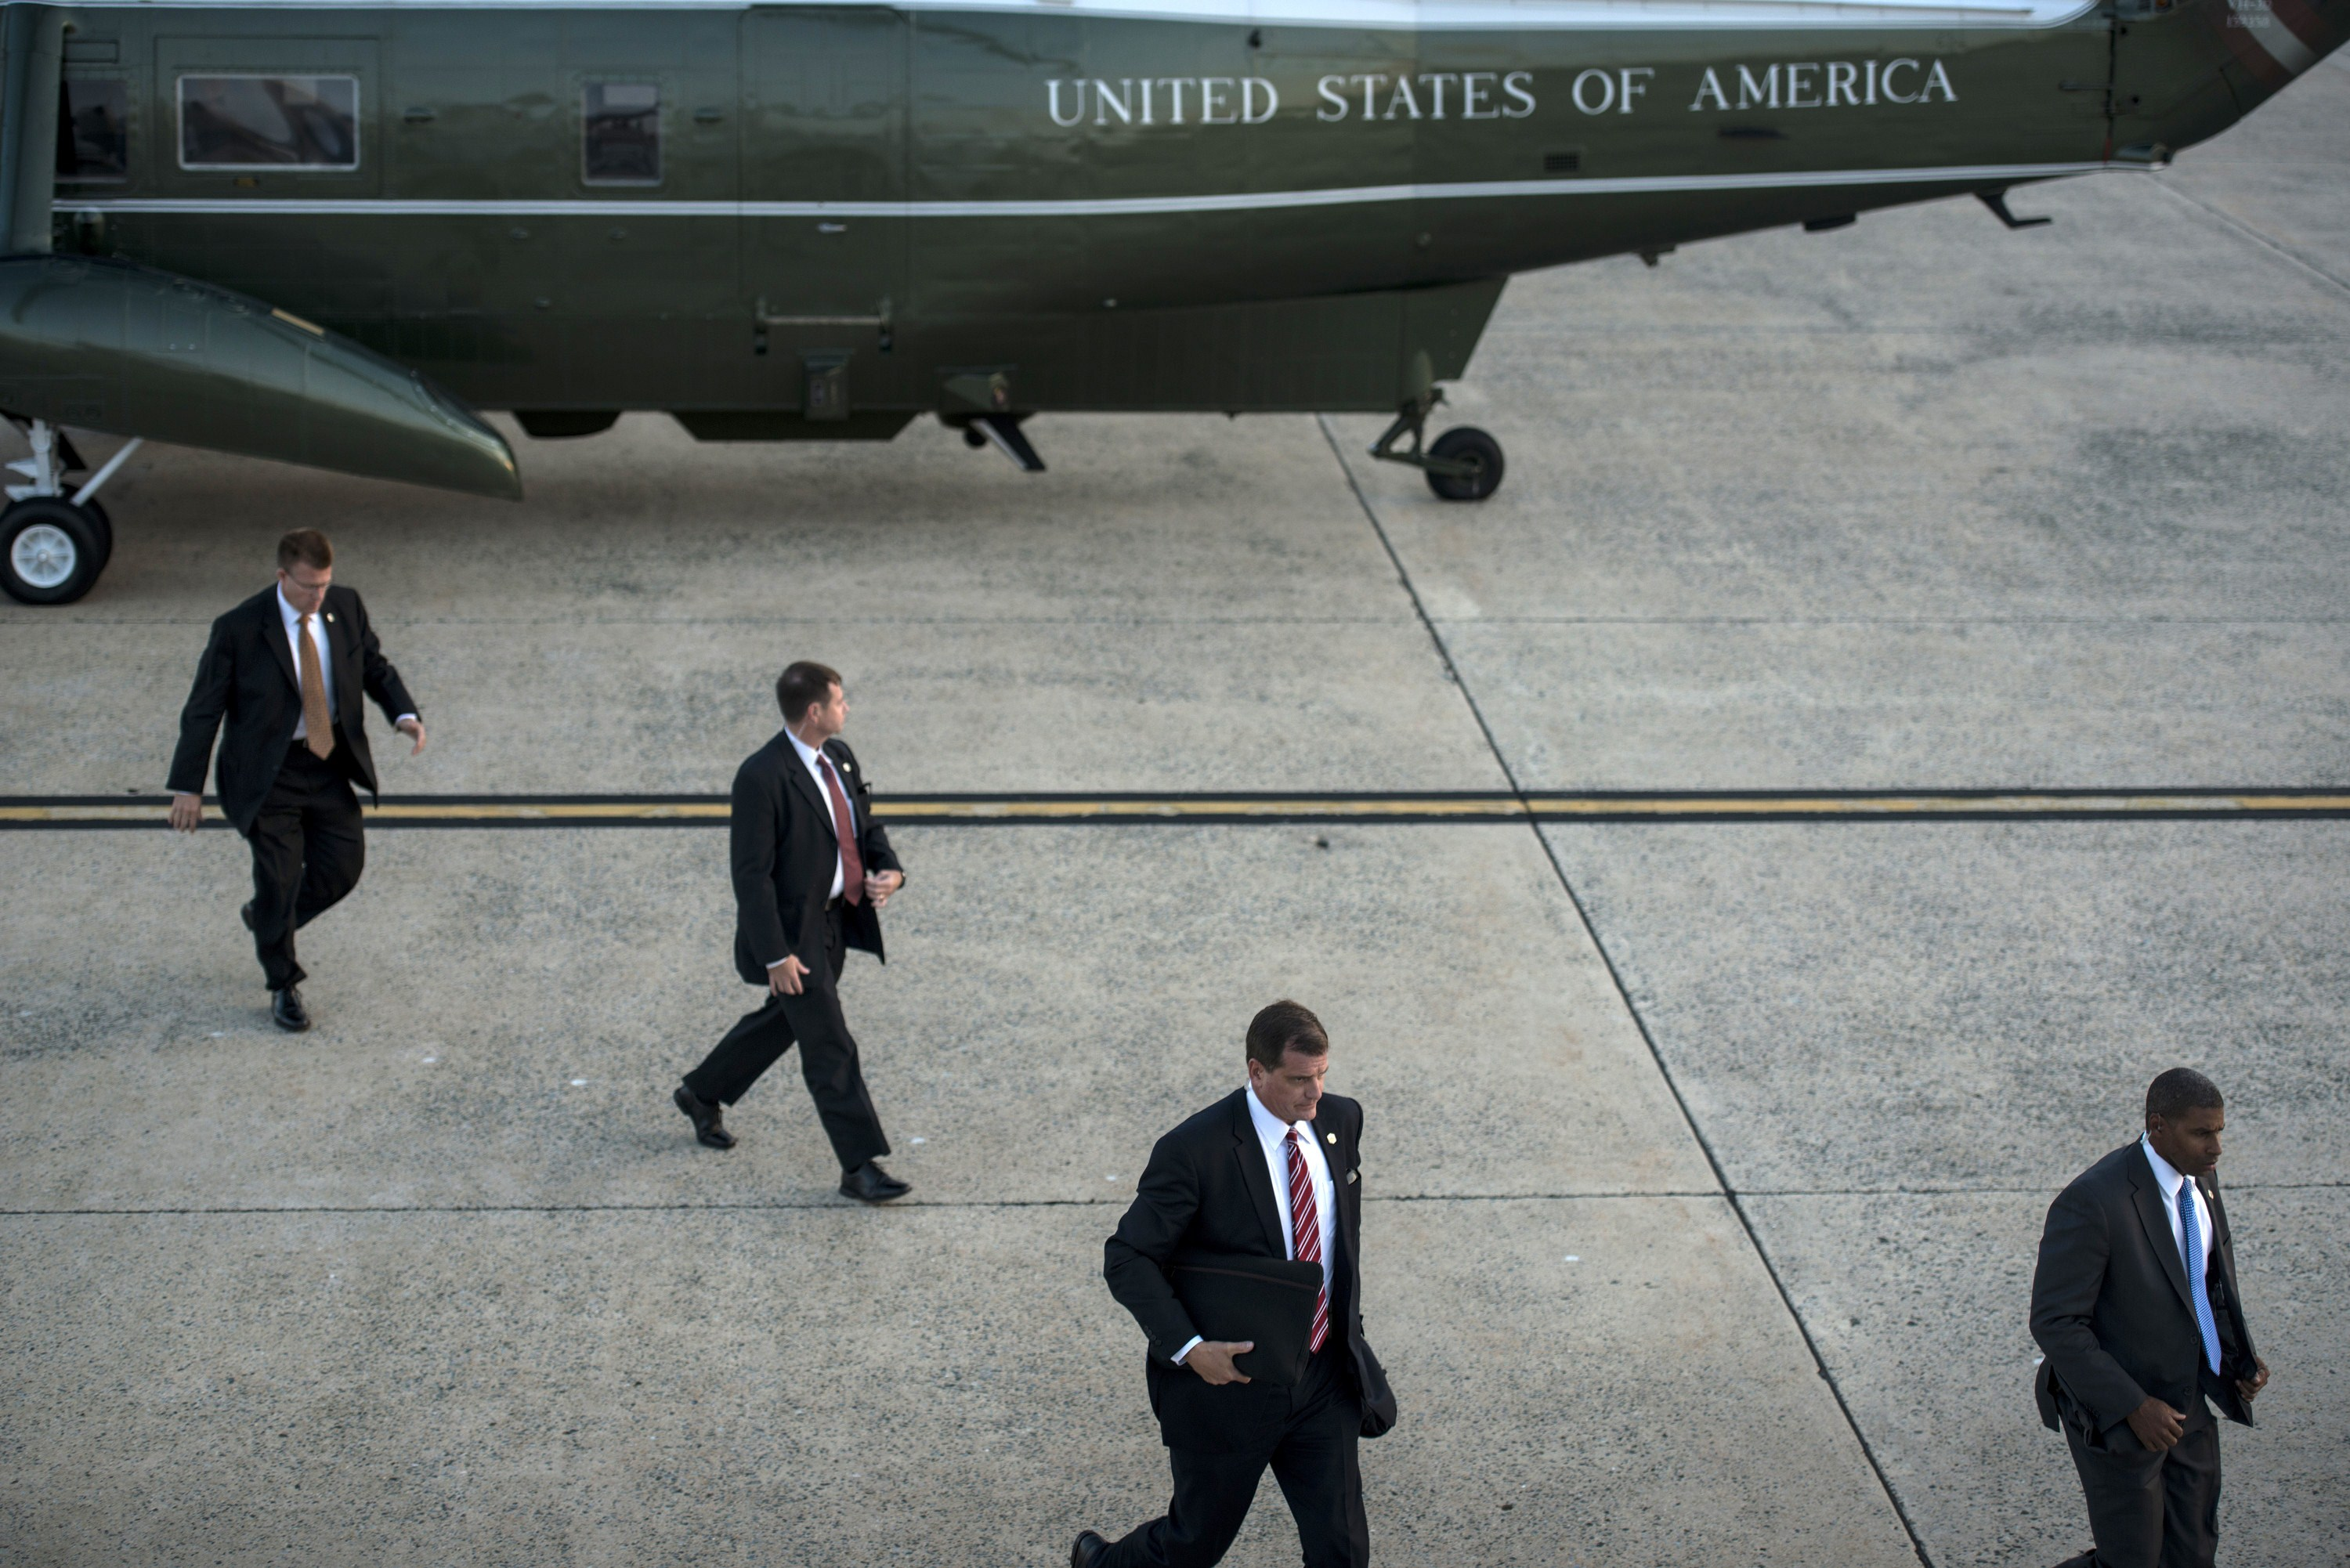 Members of the US Secret Service arrive to escort President Barack Obama on a trip at Andrews Air Force Base on Oct. 1, 2014 in Maryland.